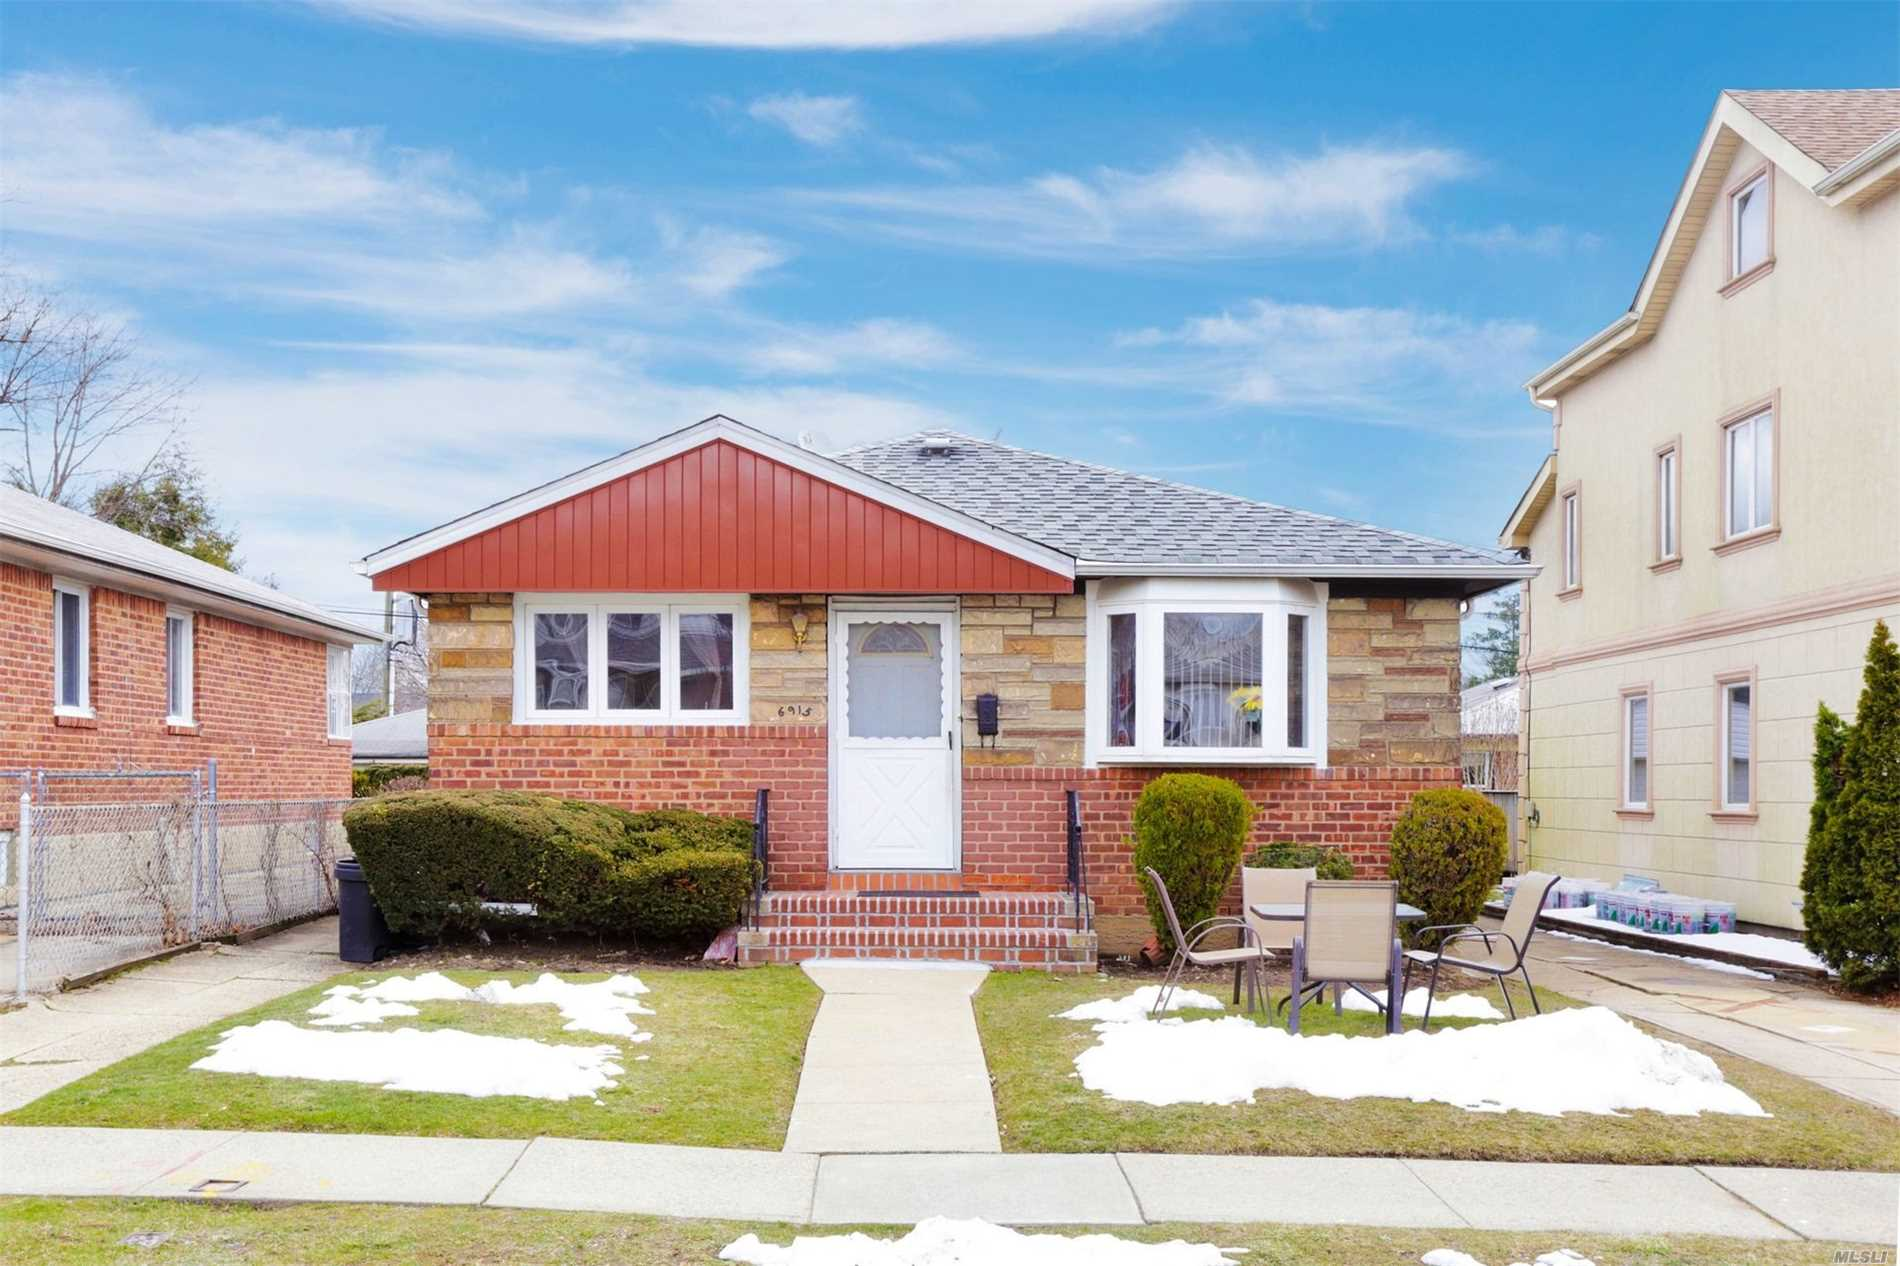 Photo of home for sale at 6915 169 St, Fresh Meadows NY